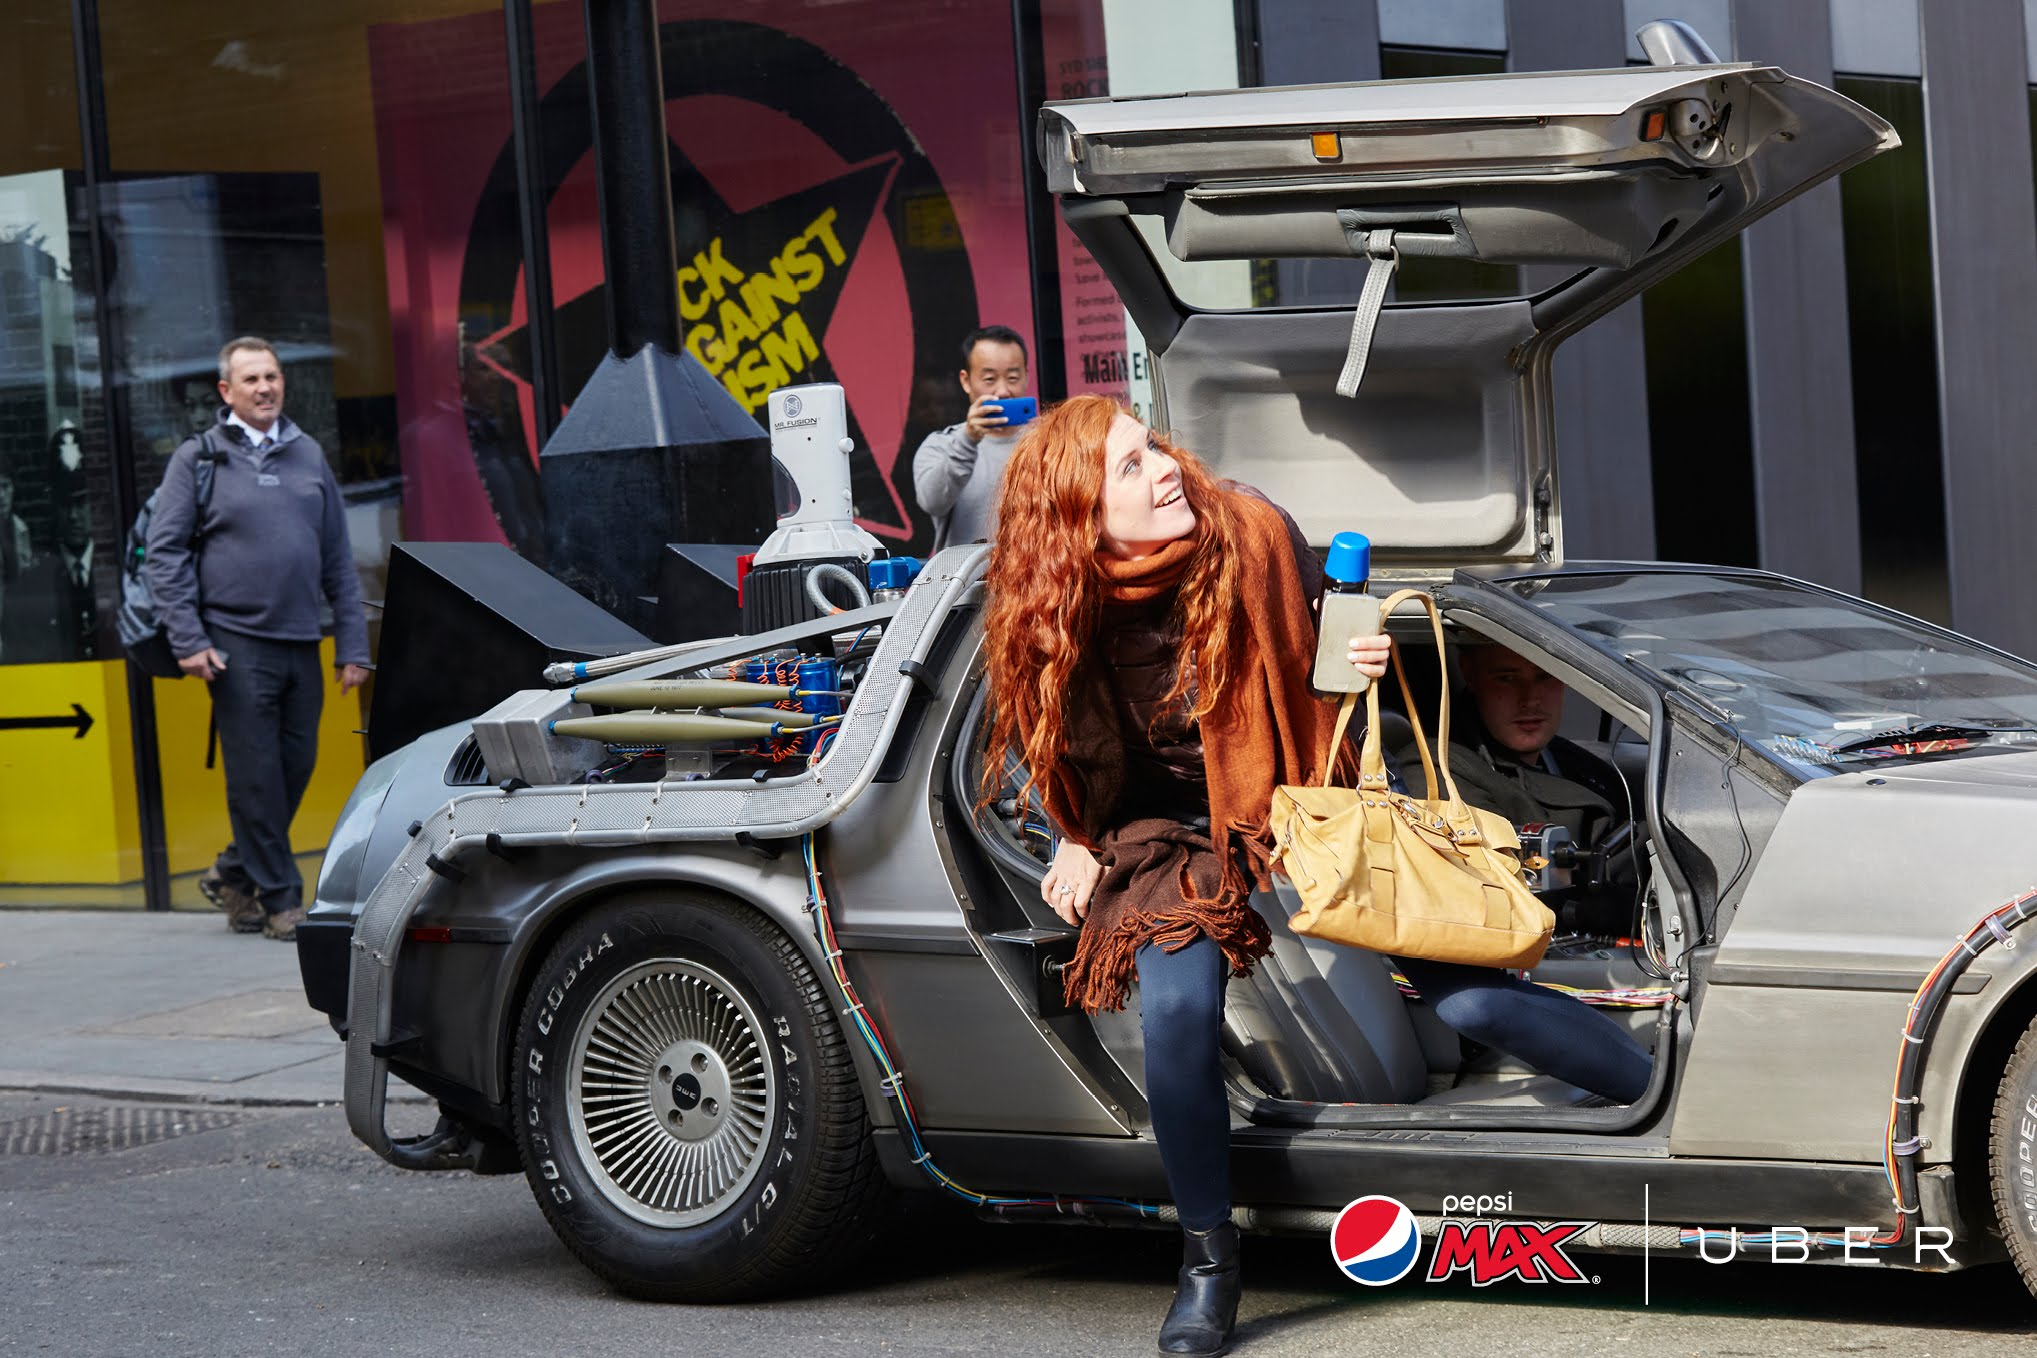 dans-ta-pub-pepsi-uber-back-to-the-future-delorean